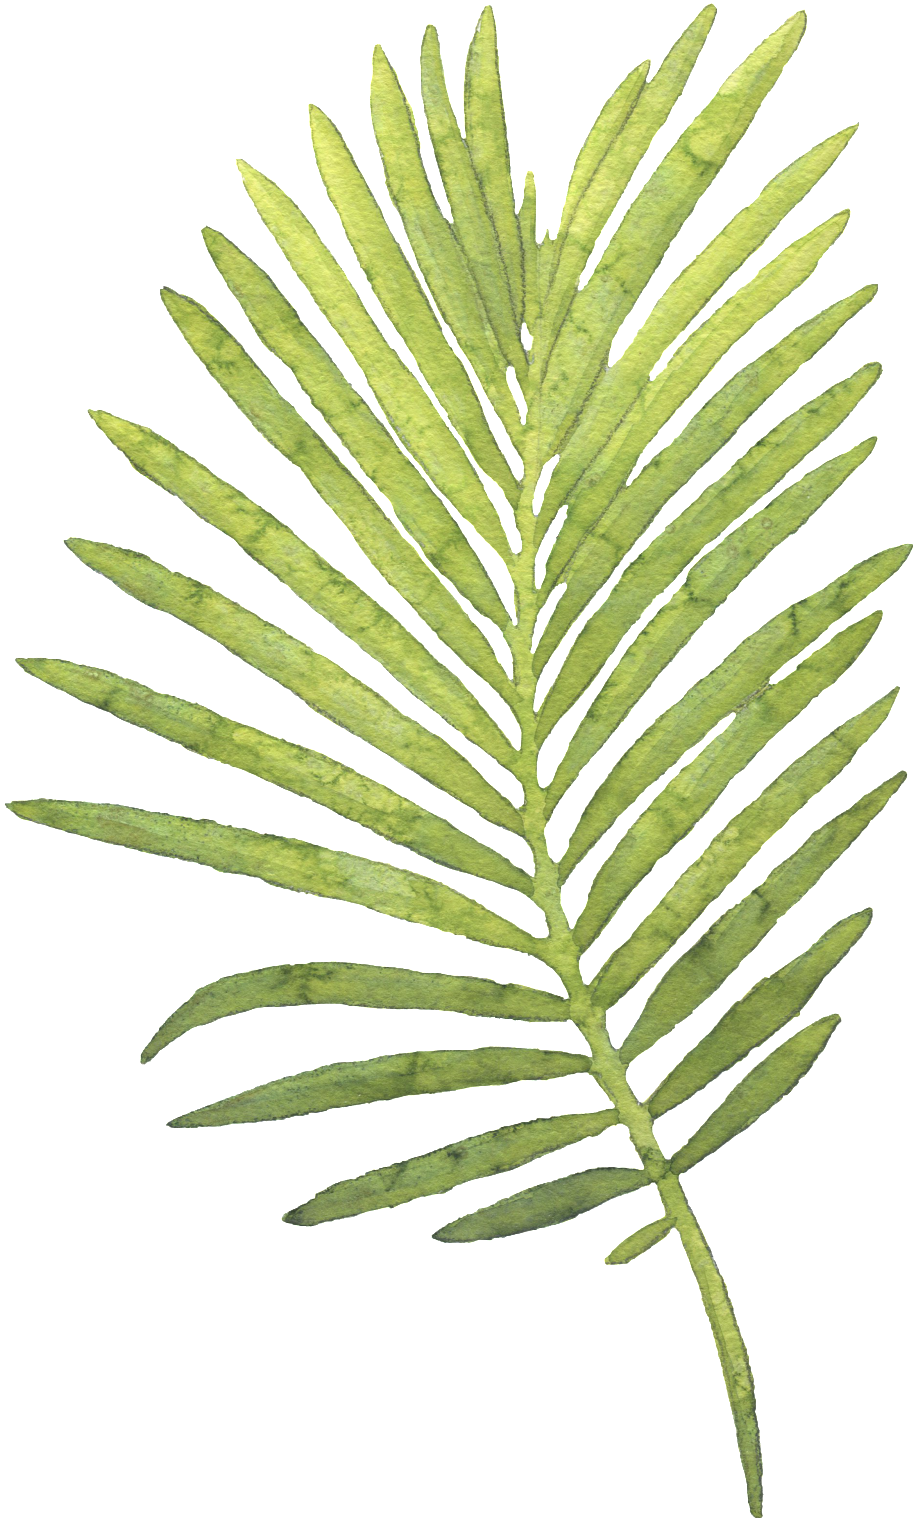 Watercolor Palm Leaves Png Watercolour Palm Leaf No Background Transparent Cartoon Jing Fm Tropical leaves frame png transparent image for free, tropical leaves frame clipart picture with no background high quality, search more creative download the tropical leaves frame png images background image and use it as your wallpaper, poster and banner design. watercolour palm leaf no background